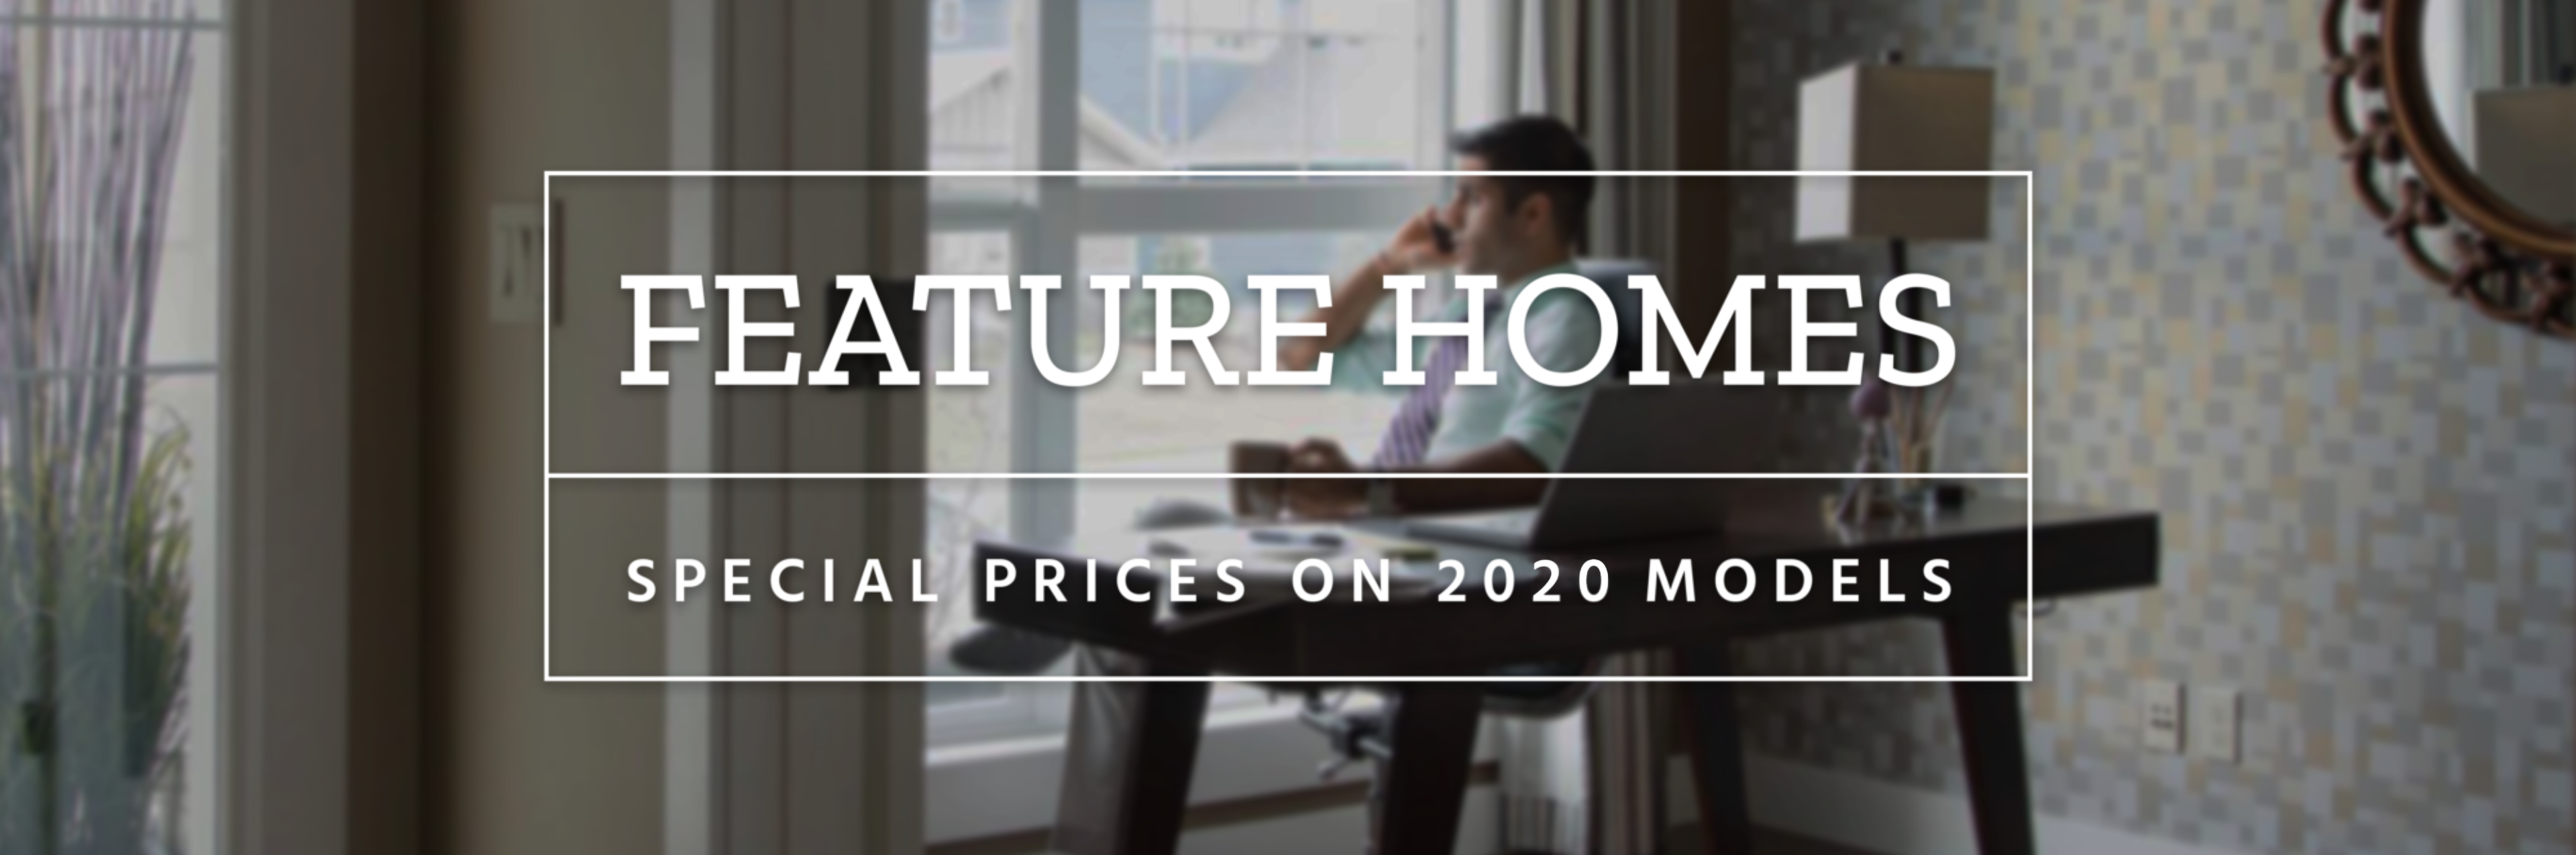 Feature Homes Banner 2020